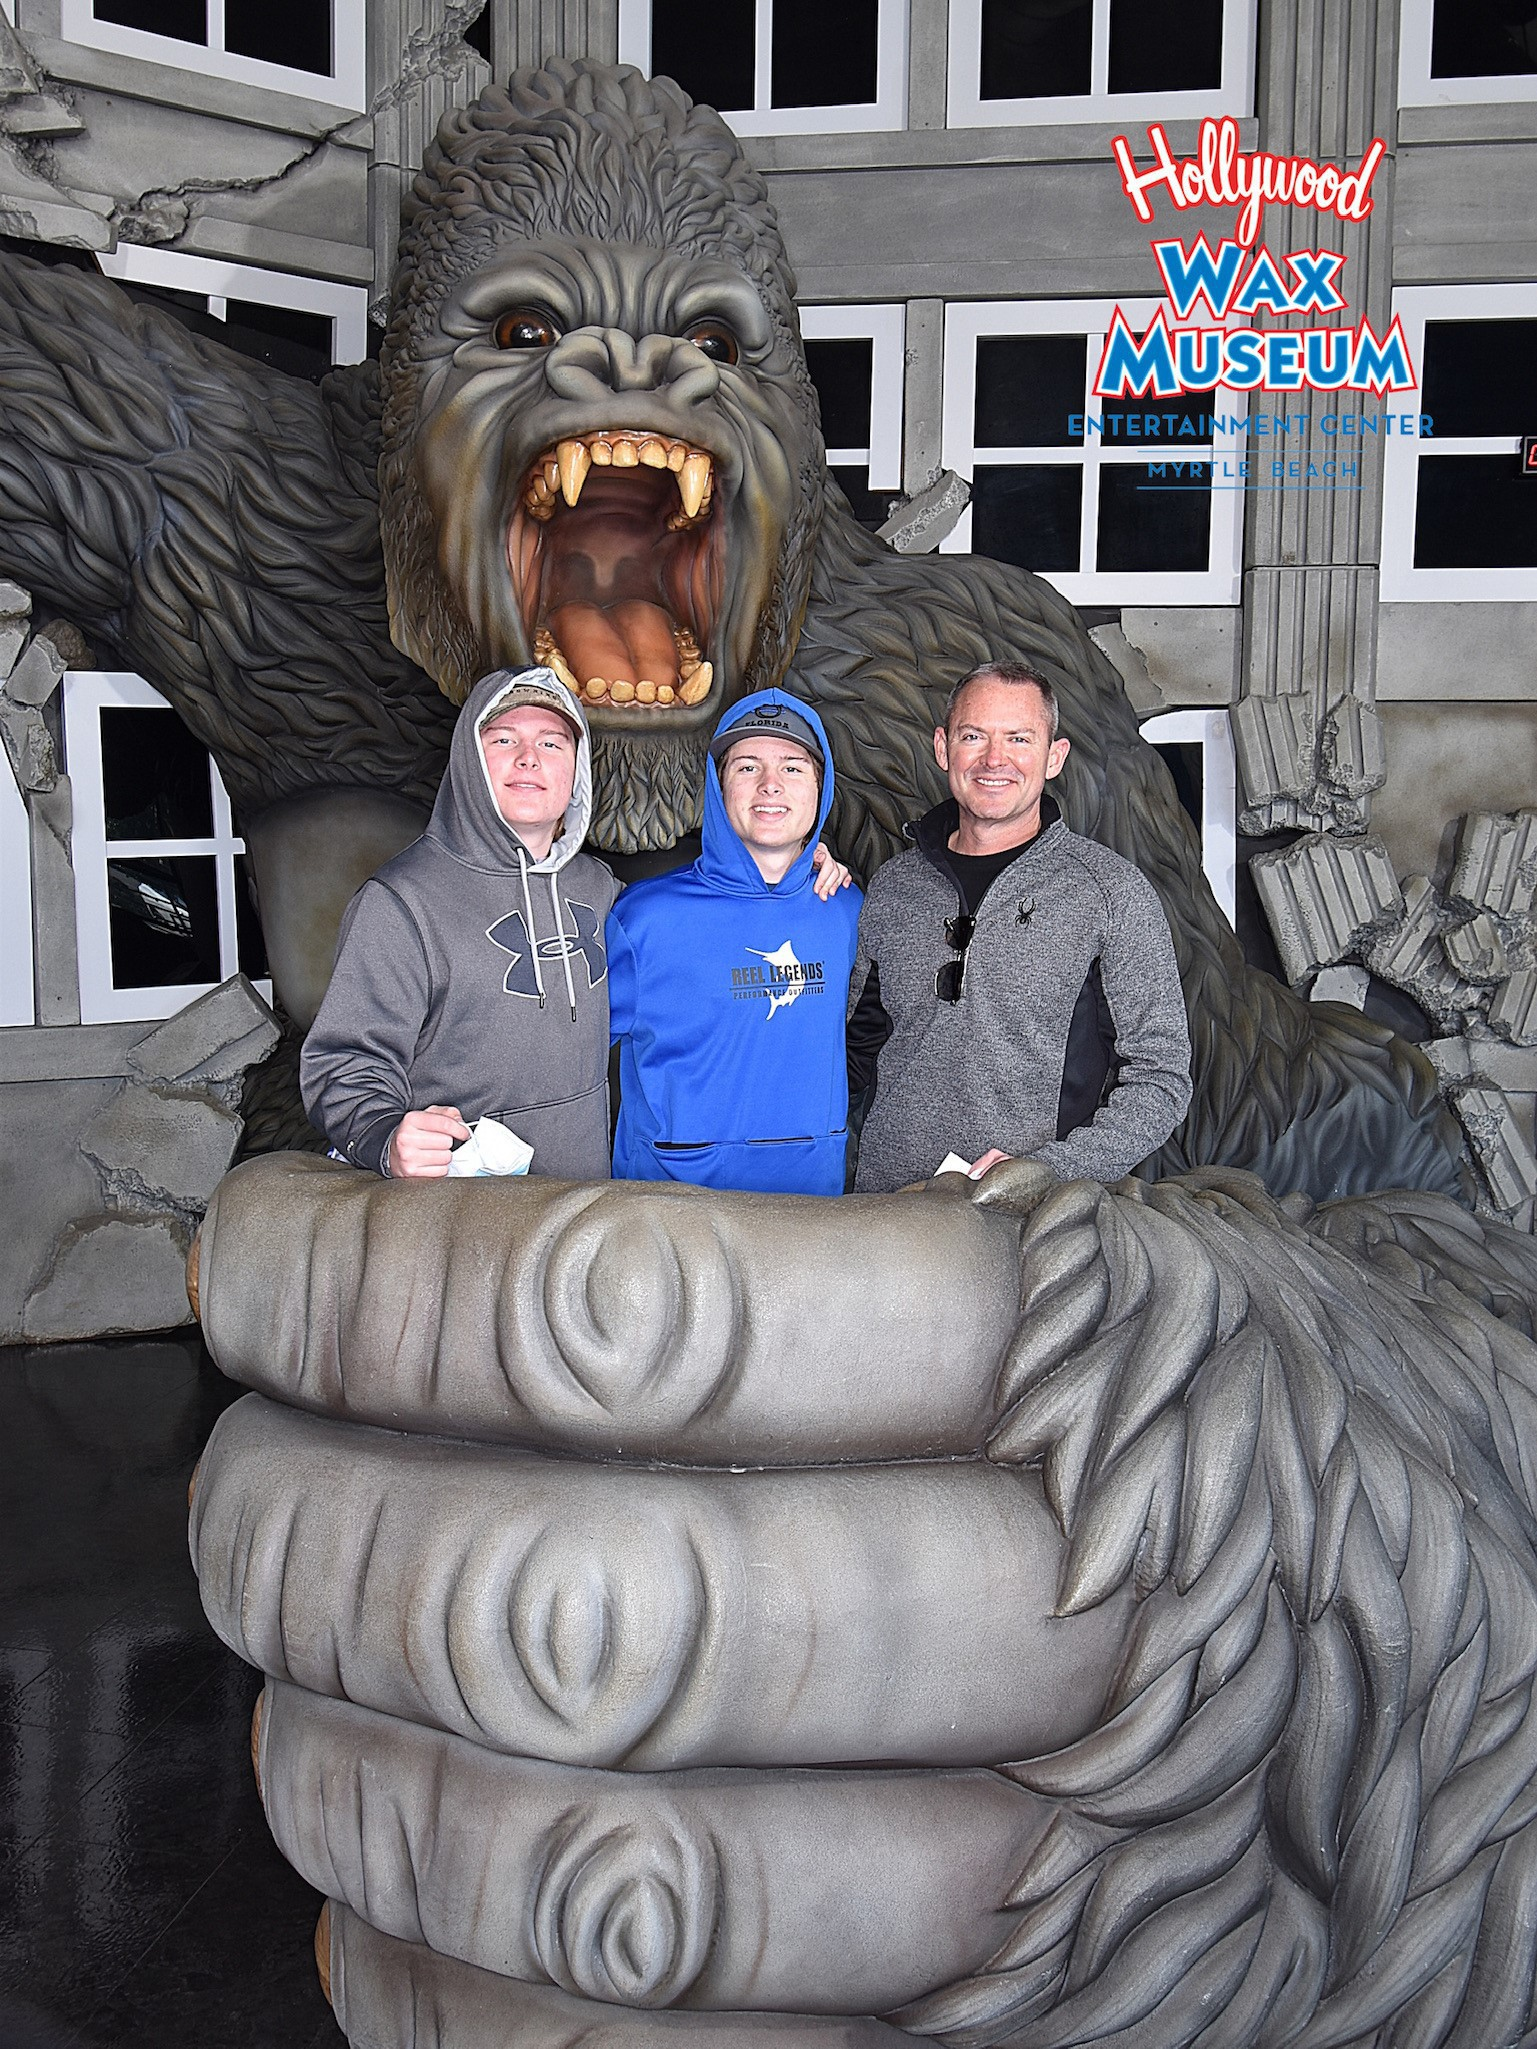 Aaron with sons myrtle beach